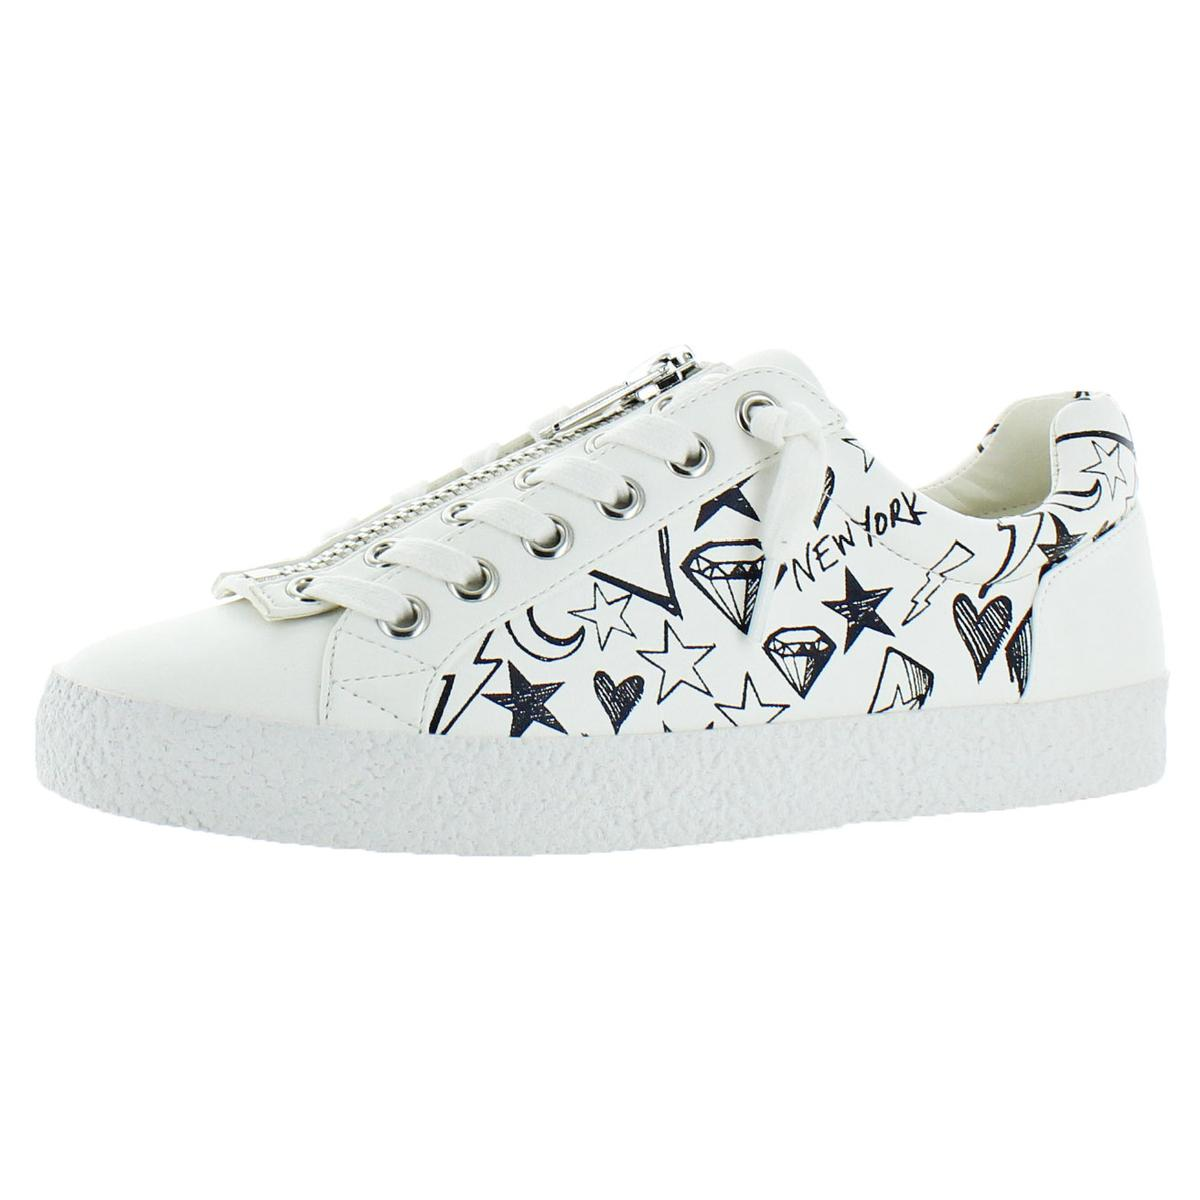 4f225988890 Details about Steve Madden Womens Guilty White Fashion Sneakers 5.5 Medium  (B